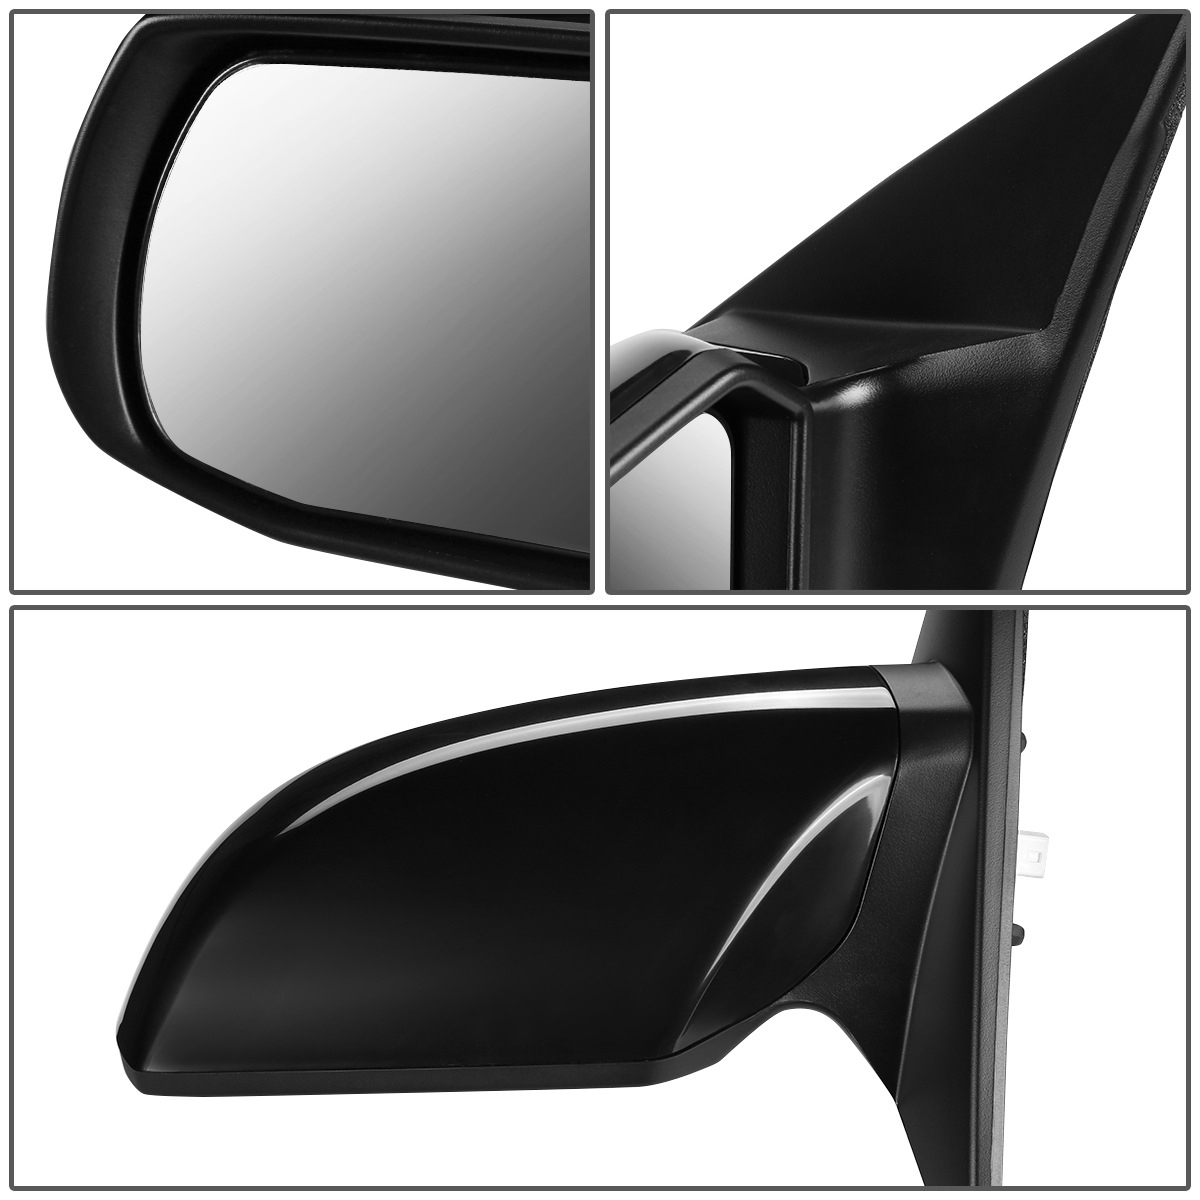 Drivers Power Side View Mirror Replacement for 2007-2012 Altima Sedan 96302JA04A